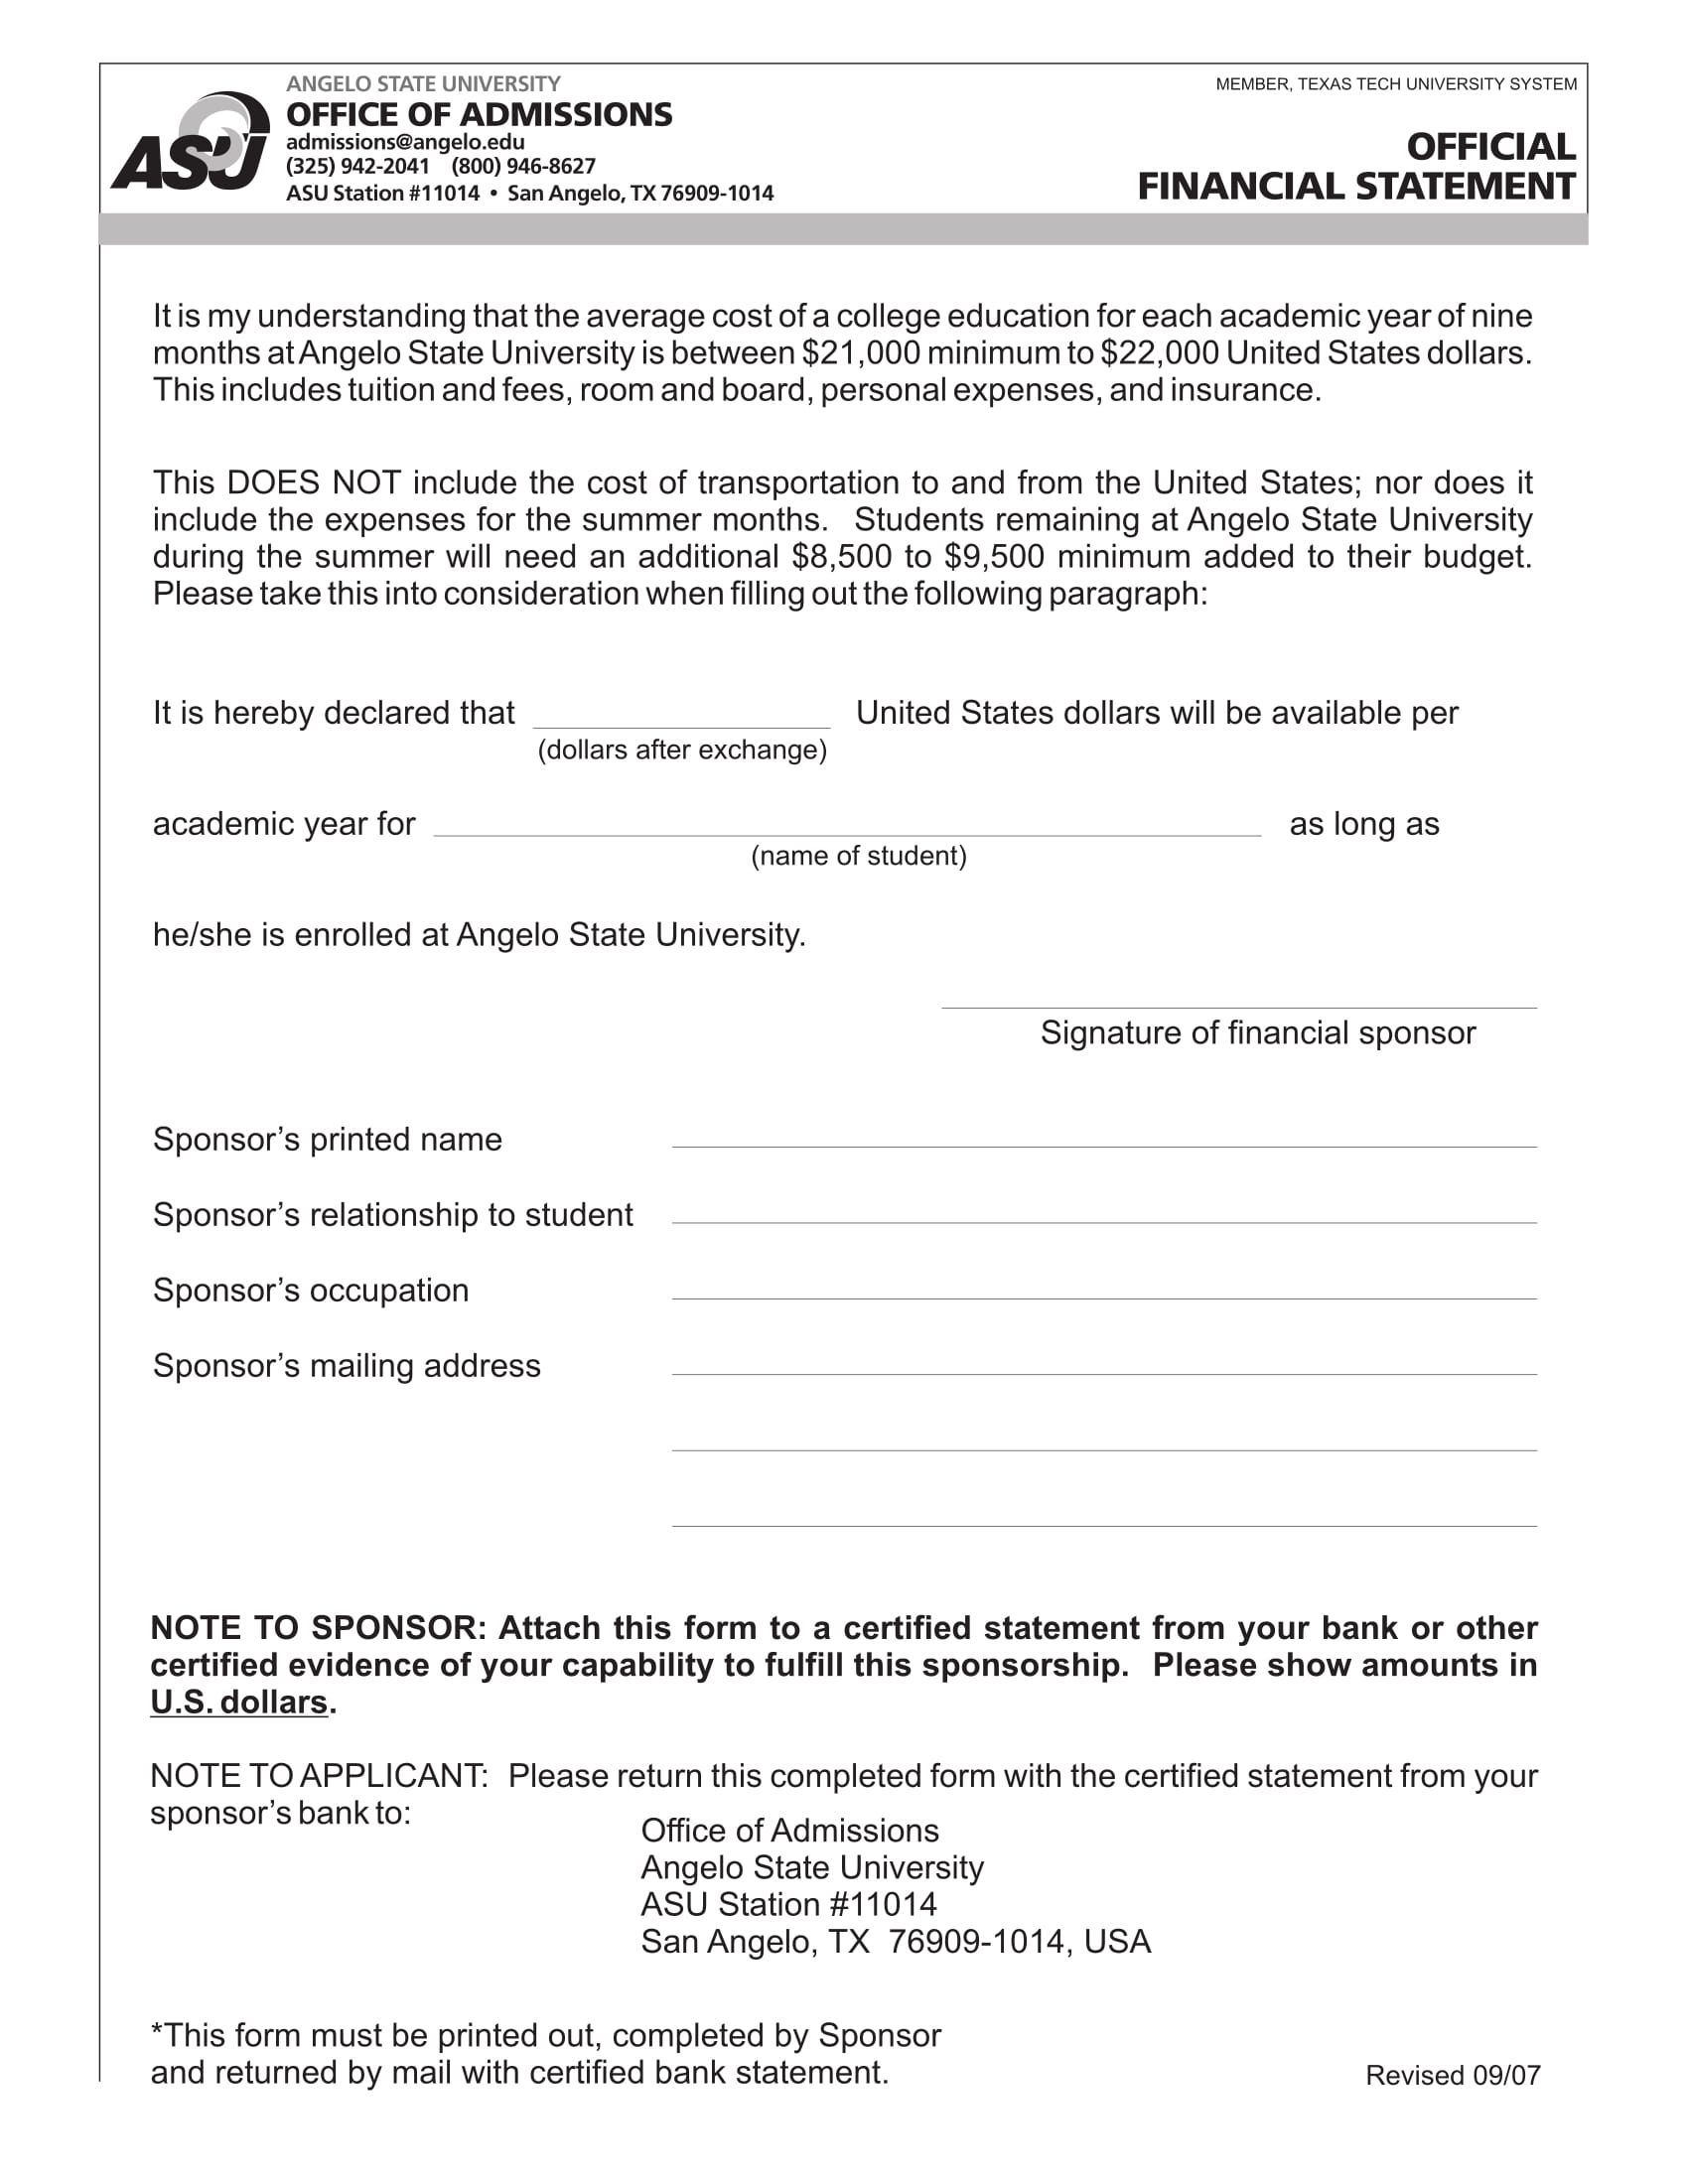 14 official statement form samples free word pdf format download